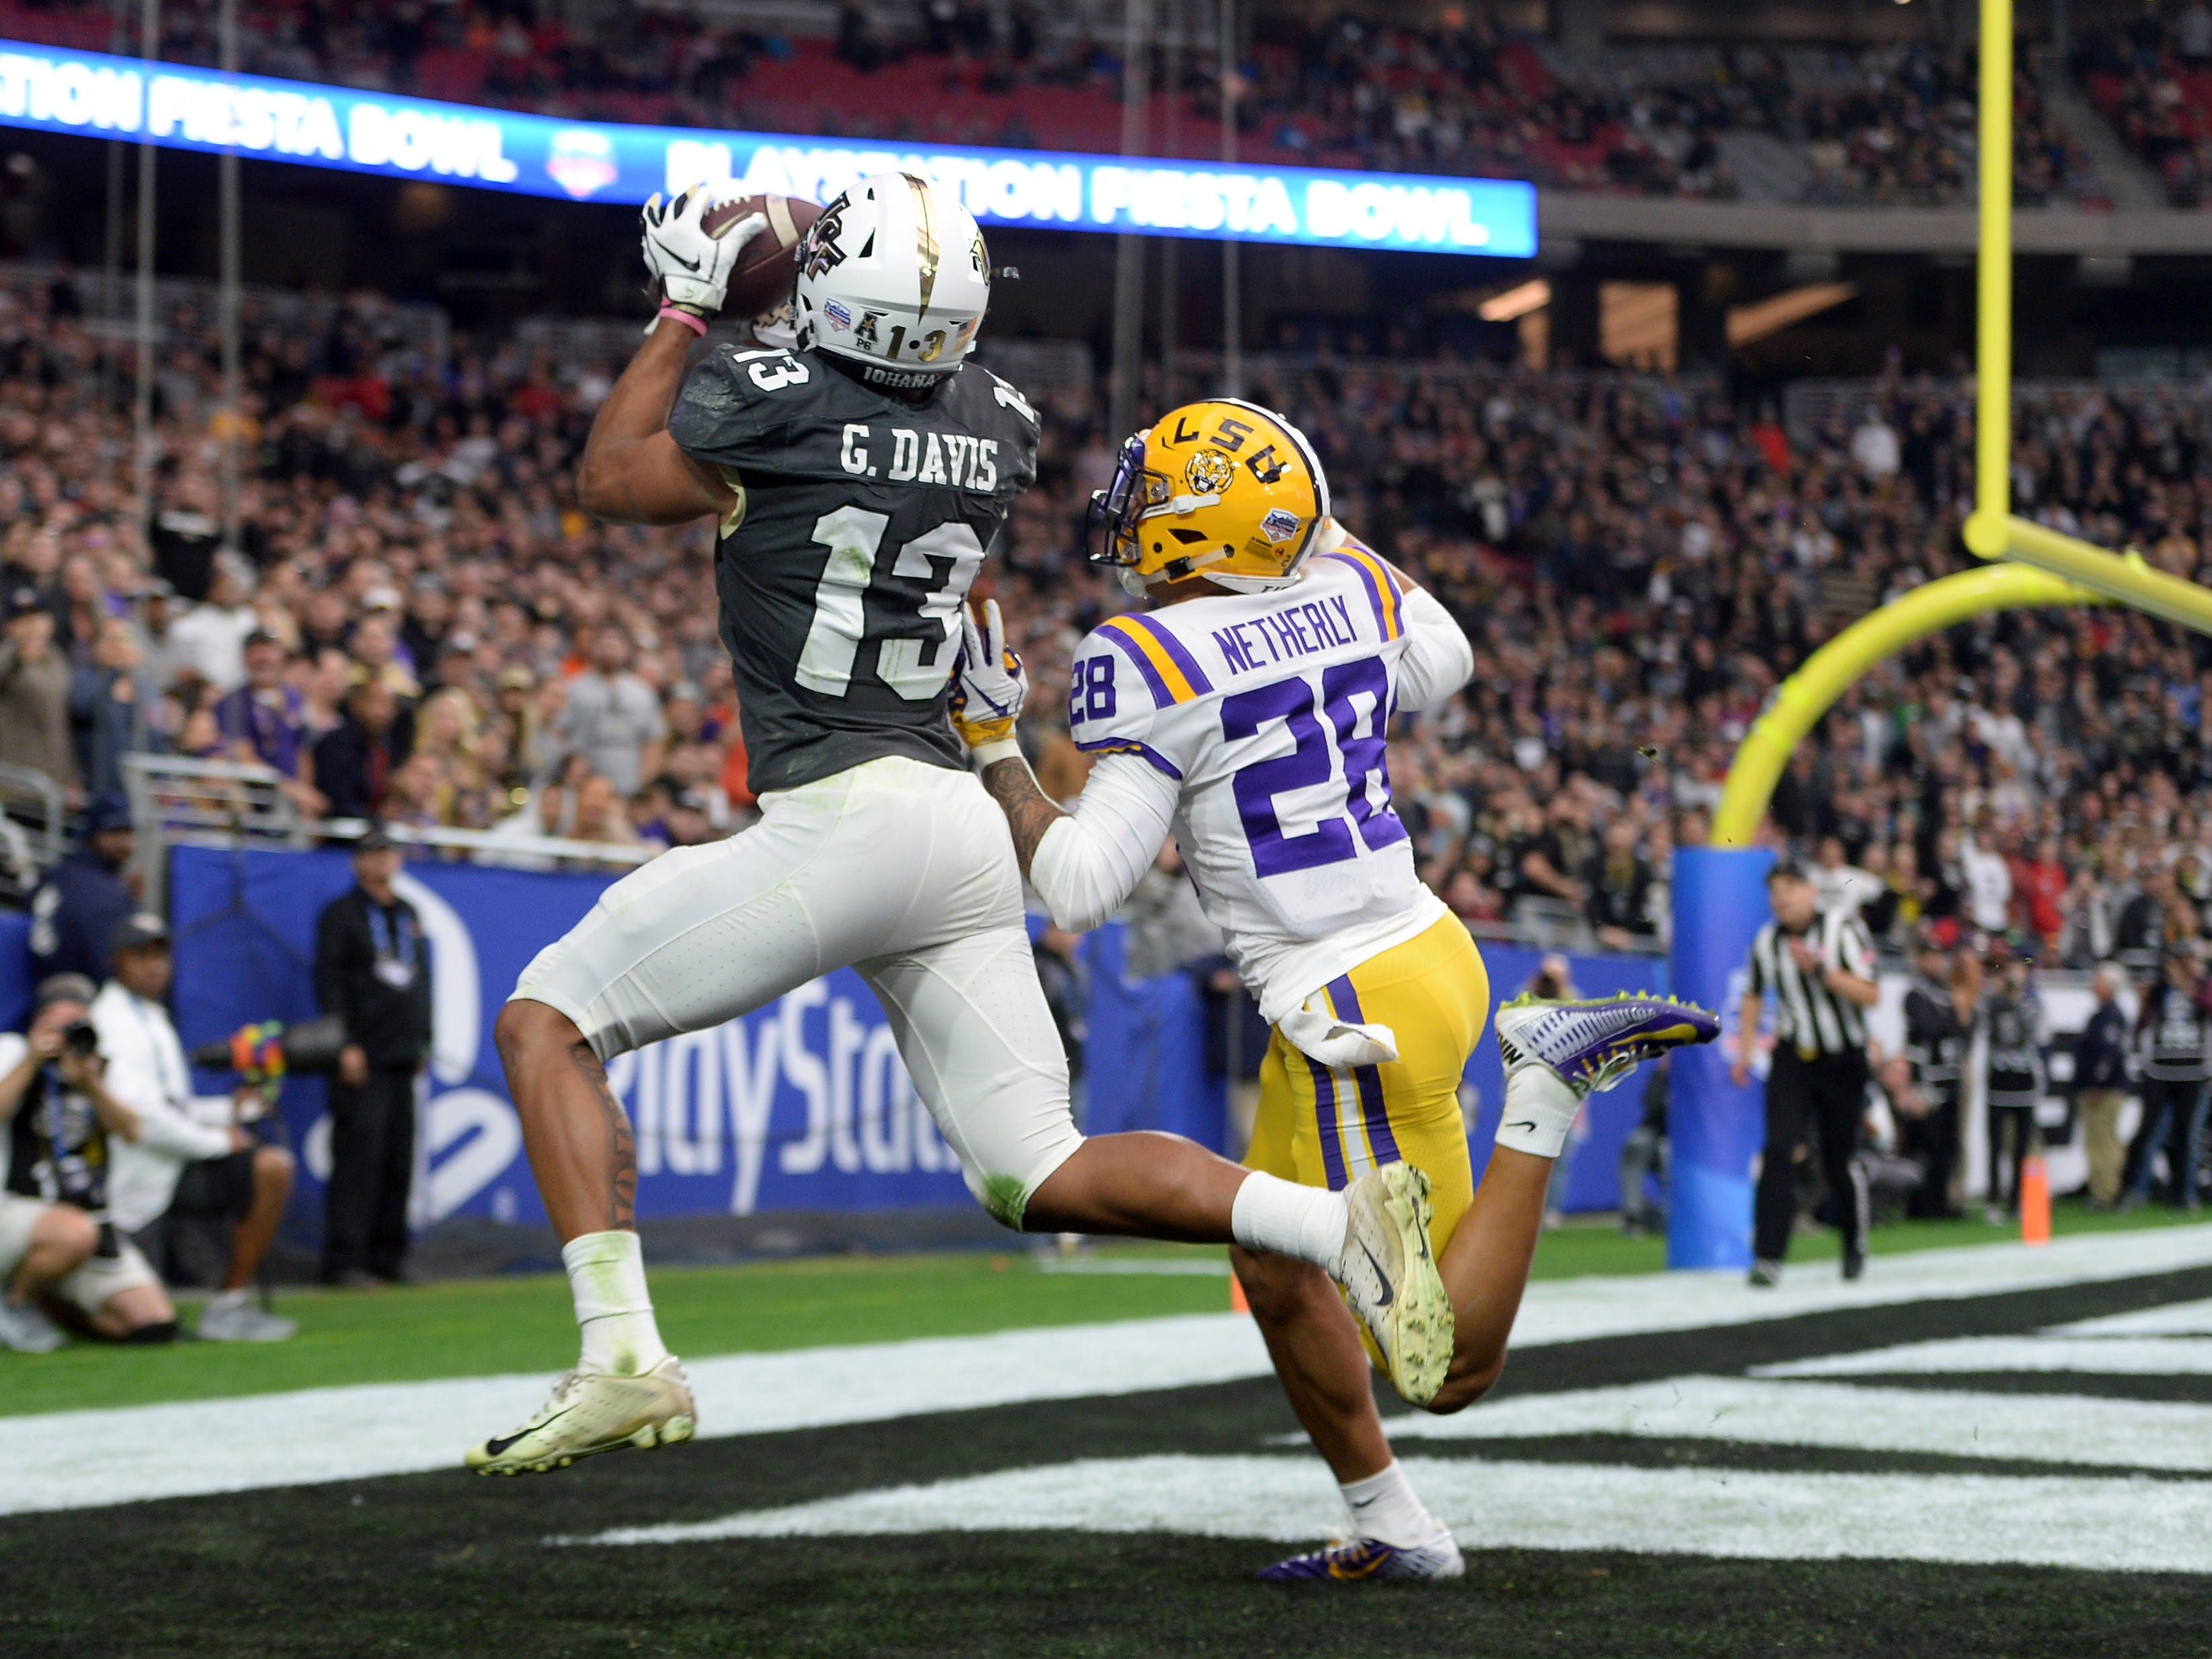 Central wide receiver Gabriel Davis catches a touchdown pass over LSU cornerback Mannie Netherly during the first half of the 2019 Fiesta Bowl.